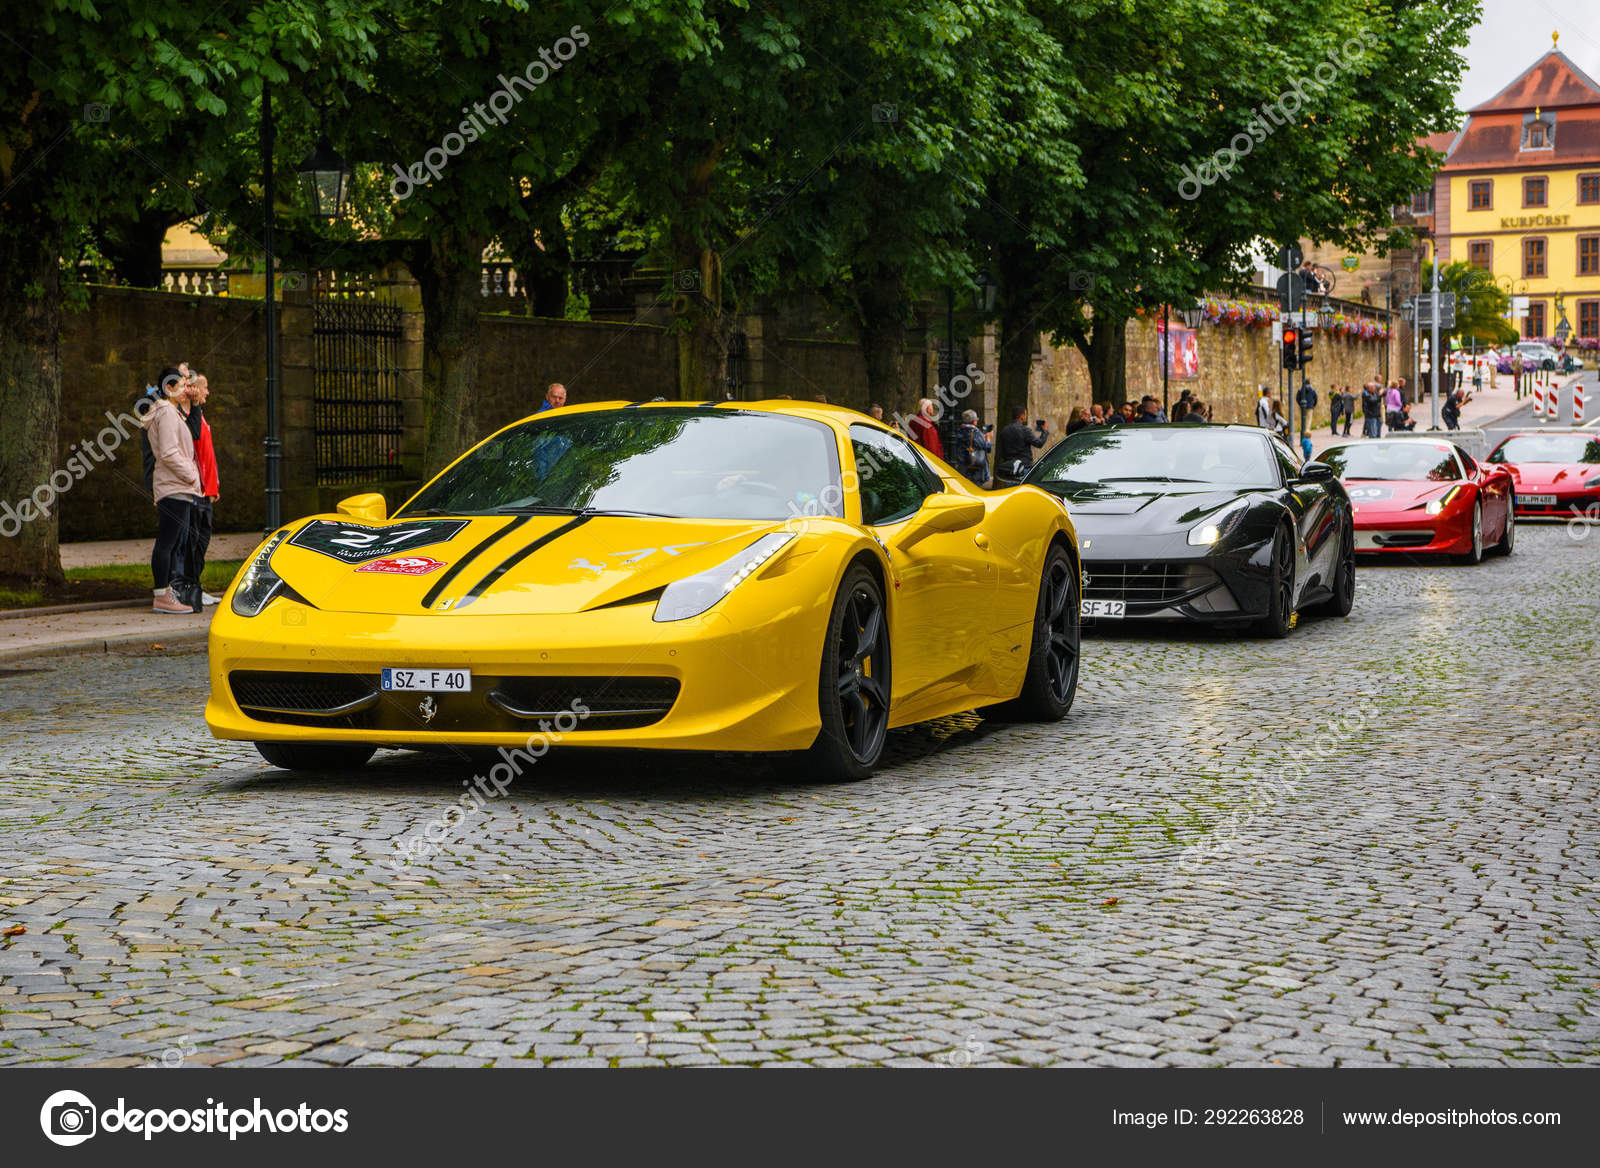 Germany Fulda Jul 2019 Yellow Ferrari 458 Spider Coupe Was Introduced At The 2011 Frankfurt Motor Show This Convertible Variant Of The 458 Italia Features An Aluminium Retractable Hardtop Which Stock Editorial Photo C Eagle2308 292263828